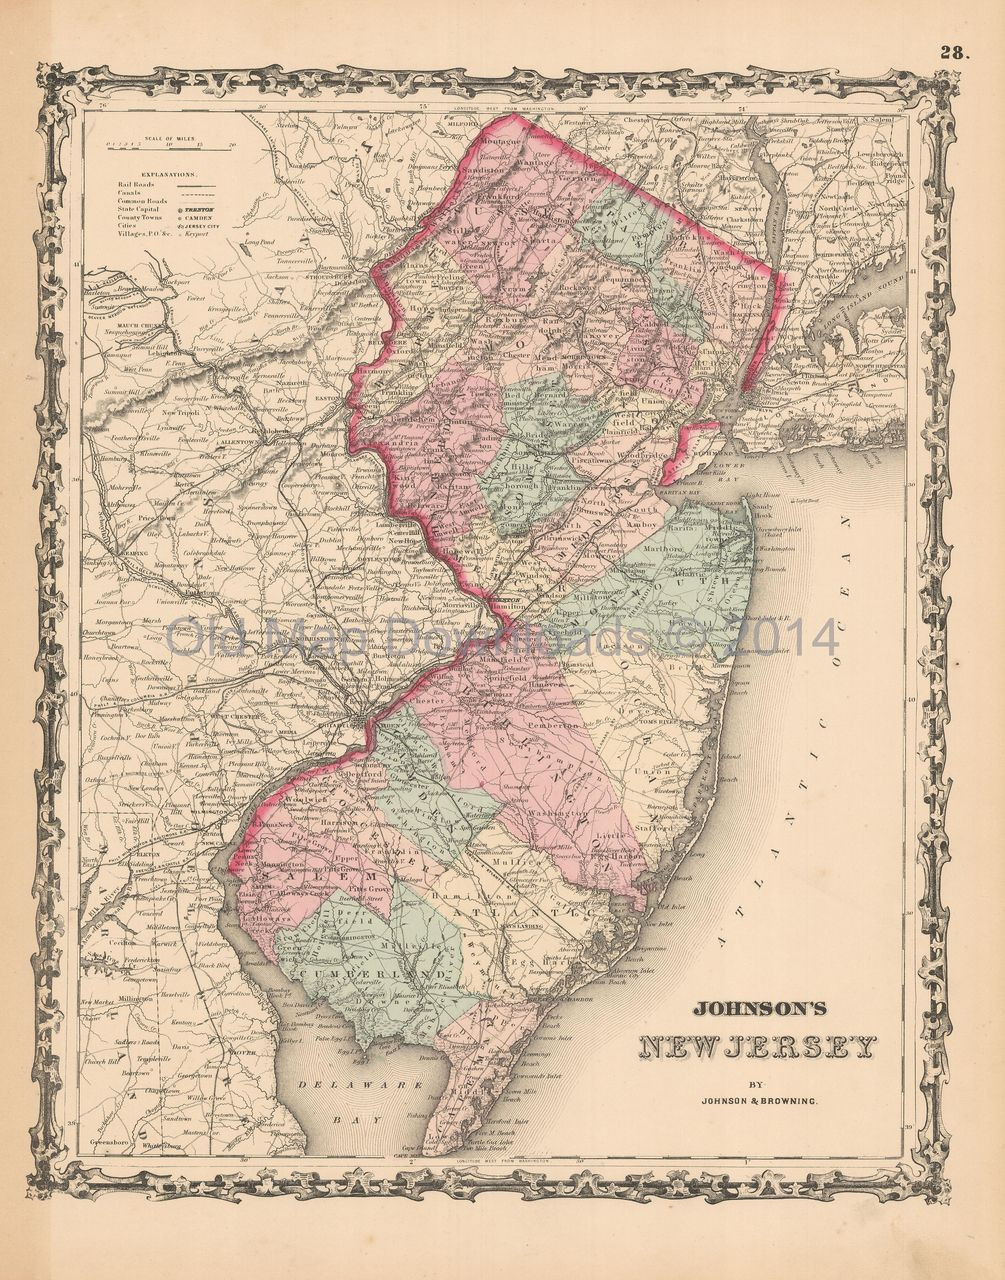 New Jersey Old Map Johnson 1861 Digital Image Scan Download